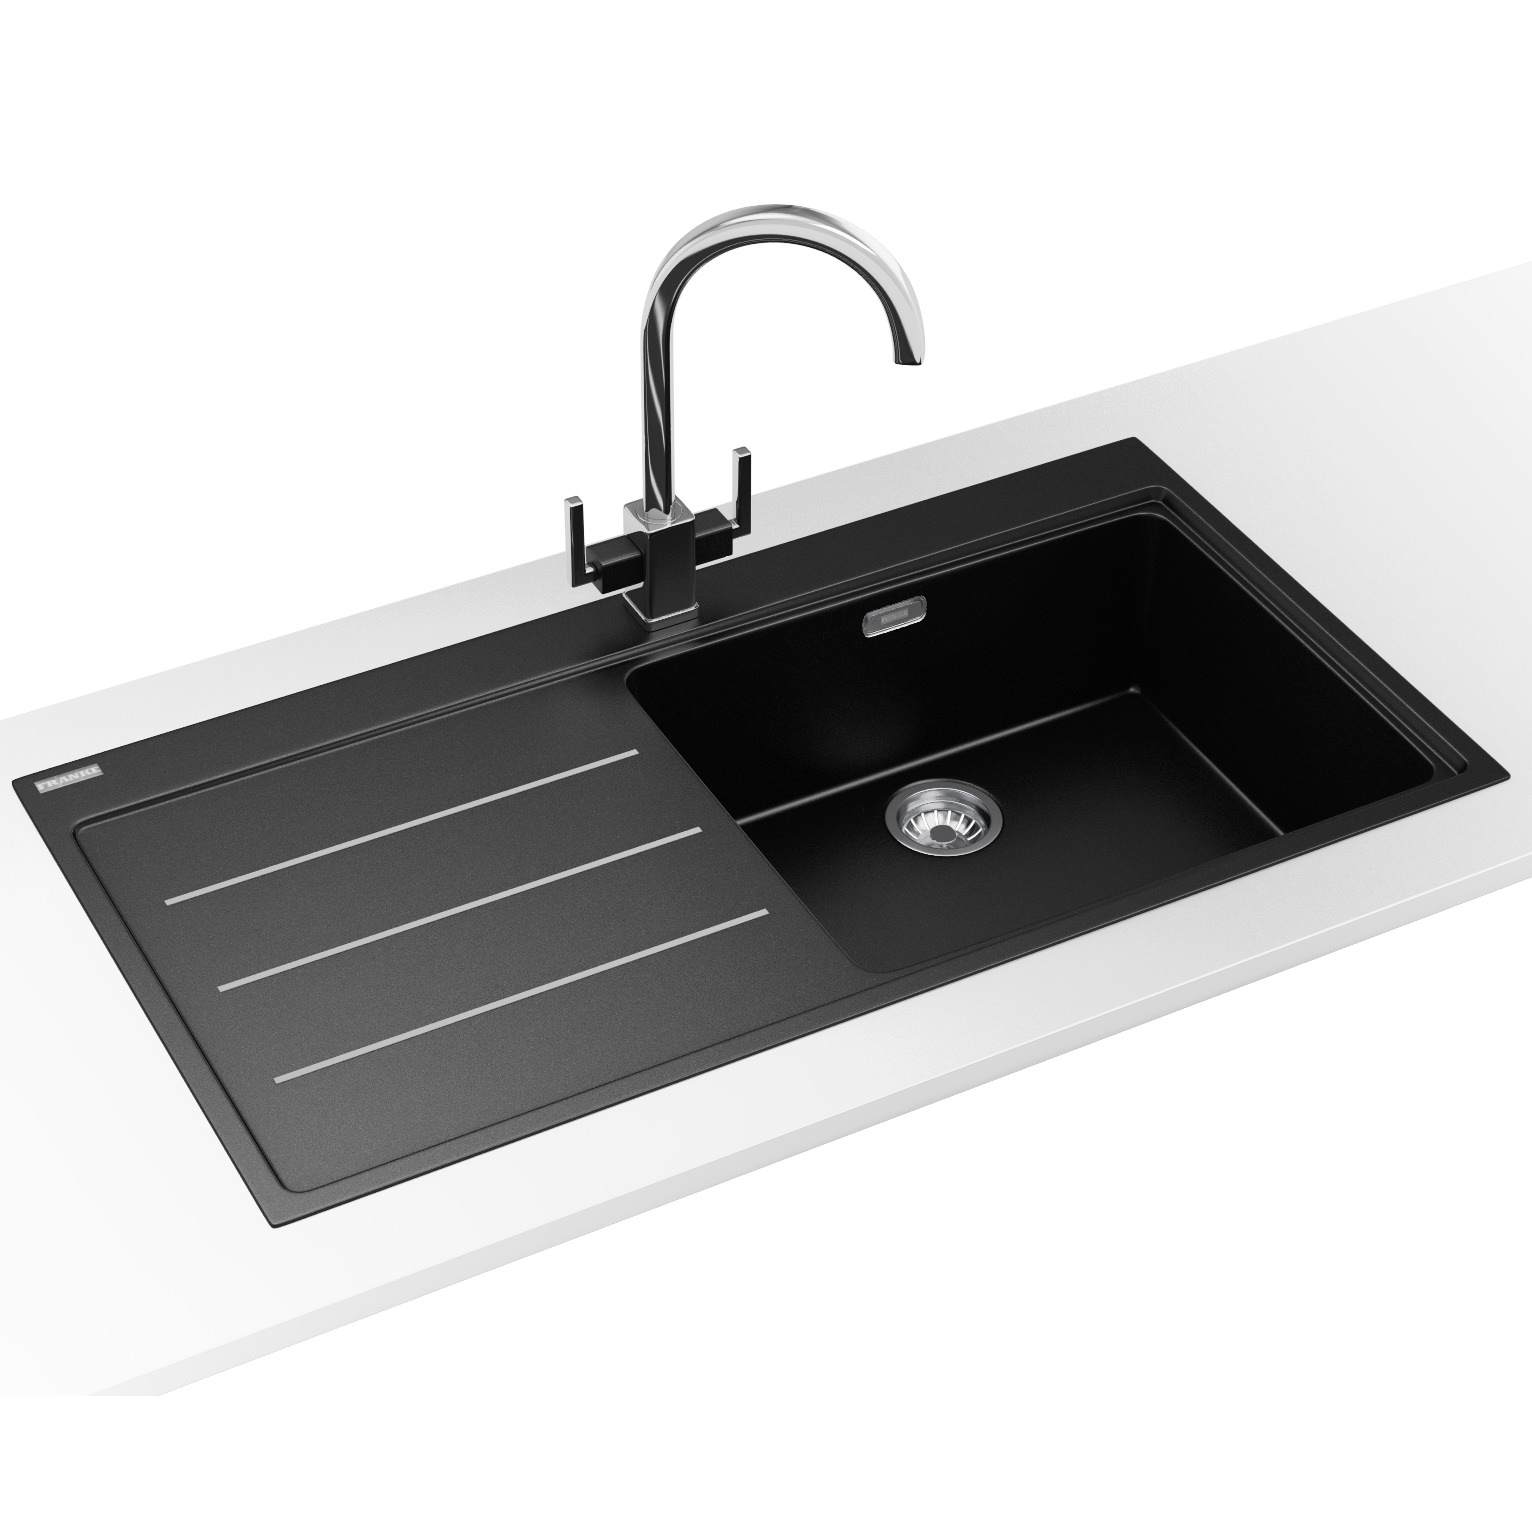 Franke Sinks And Taps : Franke Mythos Fusion DP MTF 611 Fragranite Onyx Sink And Tap 114 ...